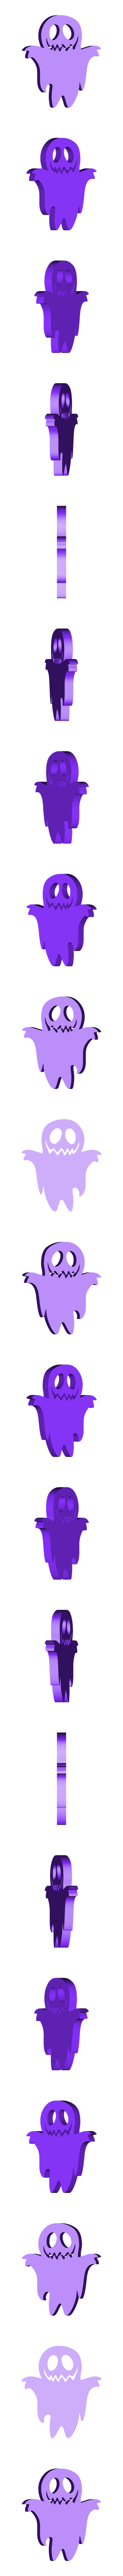 ghost.stl Download free STL file funny ghost for kids • Object to 3D print, cyrus